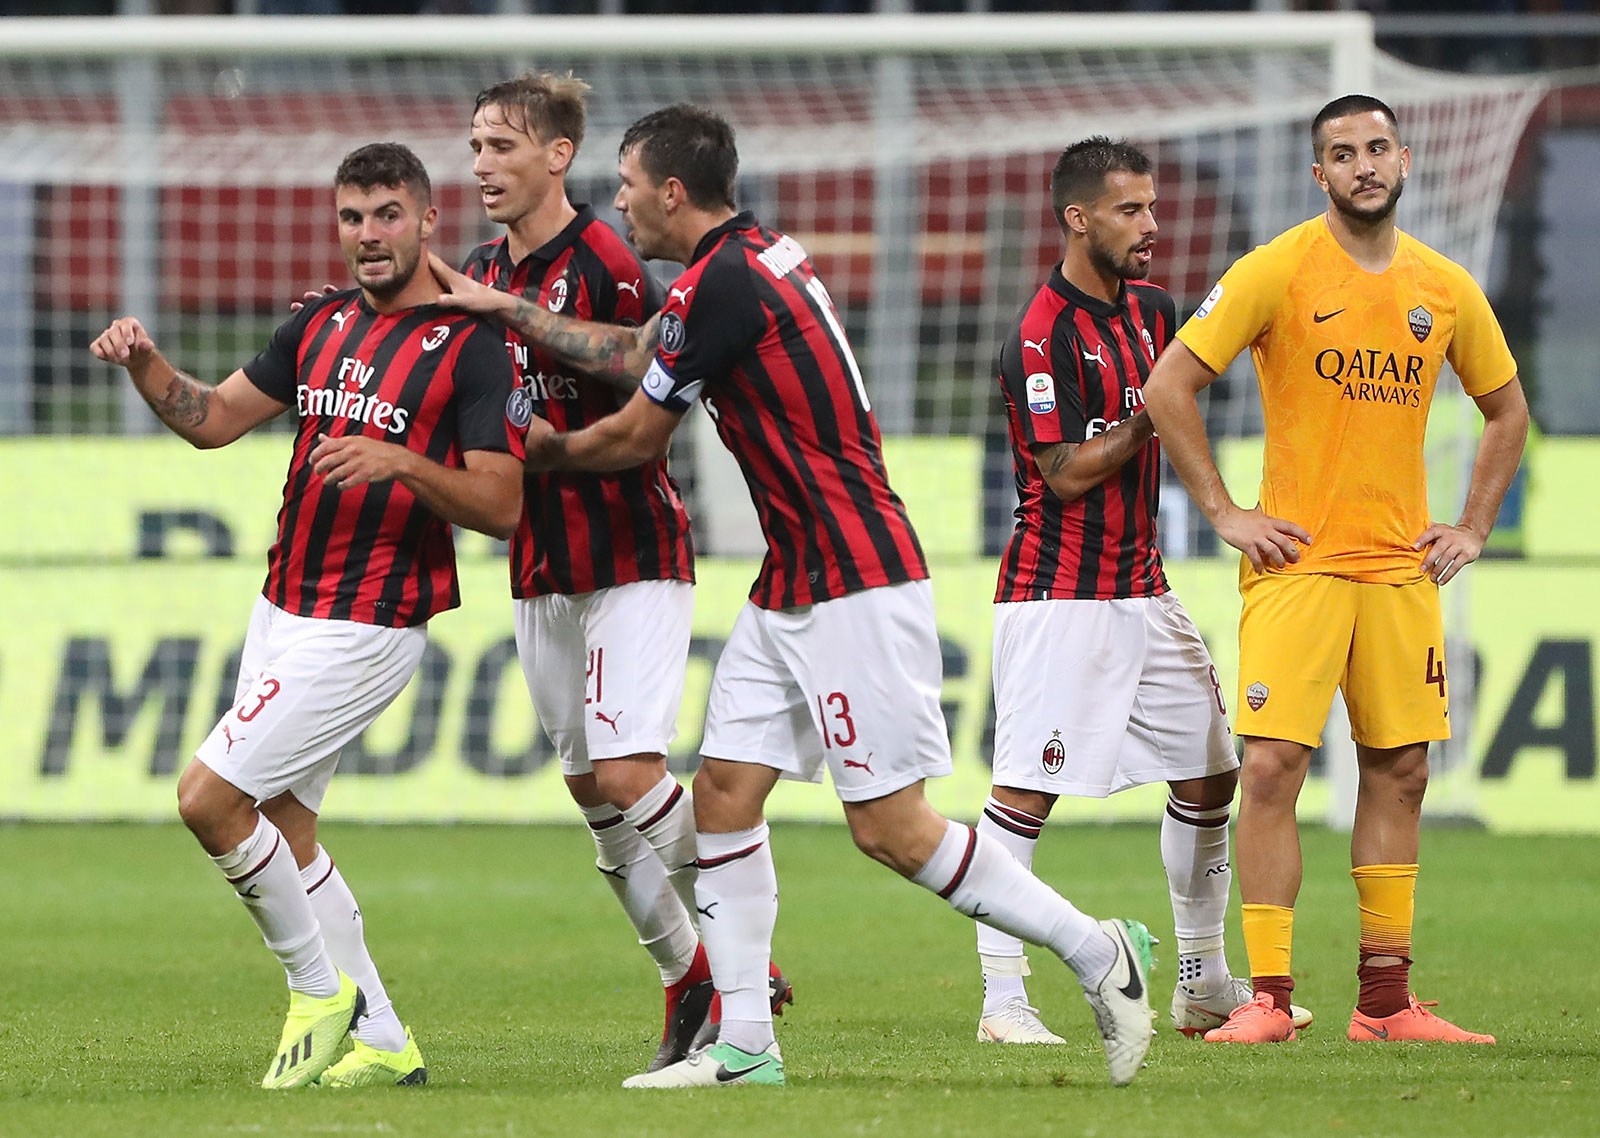 Patrick Cutrone, Lucas Biglia, Alessio Romagnoli and Suso celebrating during Milan-Roma at Stadio San Siro. (Photo by Marco Luzzani/Getty Images)